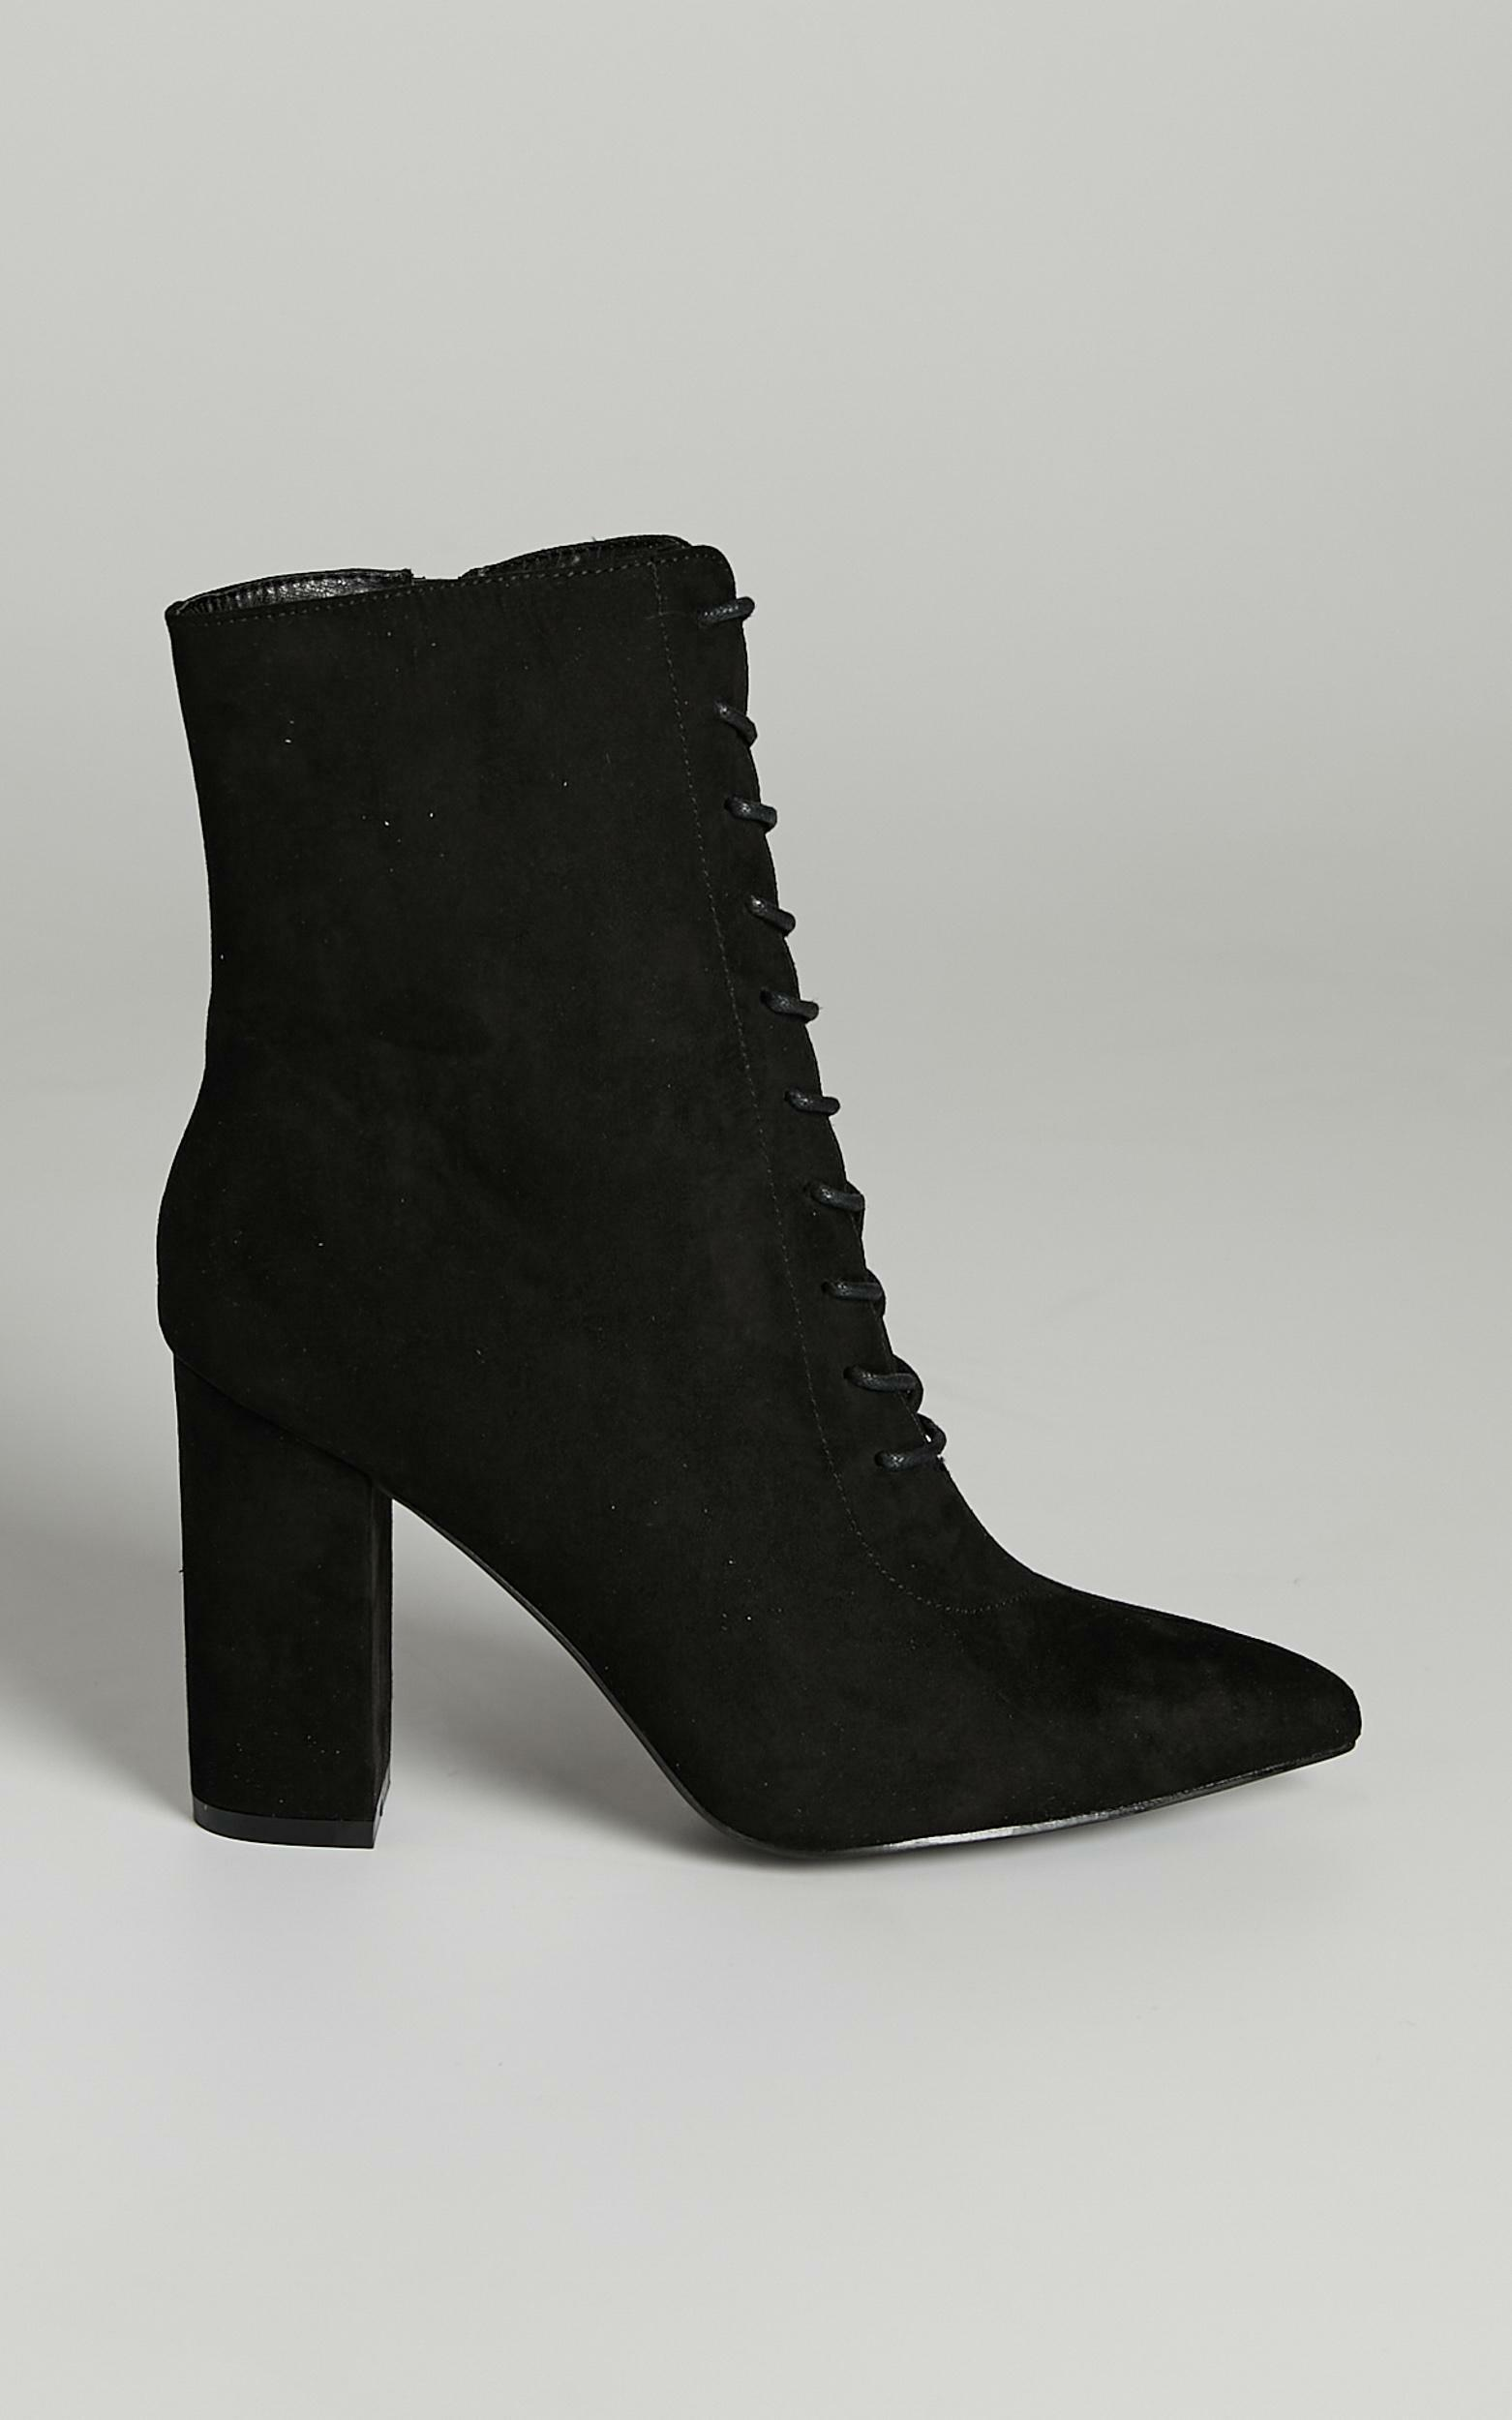 Verali - Danielle Boots in Black Micro - 05, BLK1, hi-res image number null